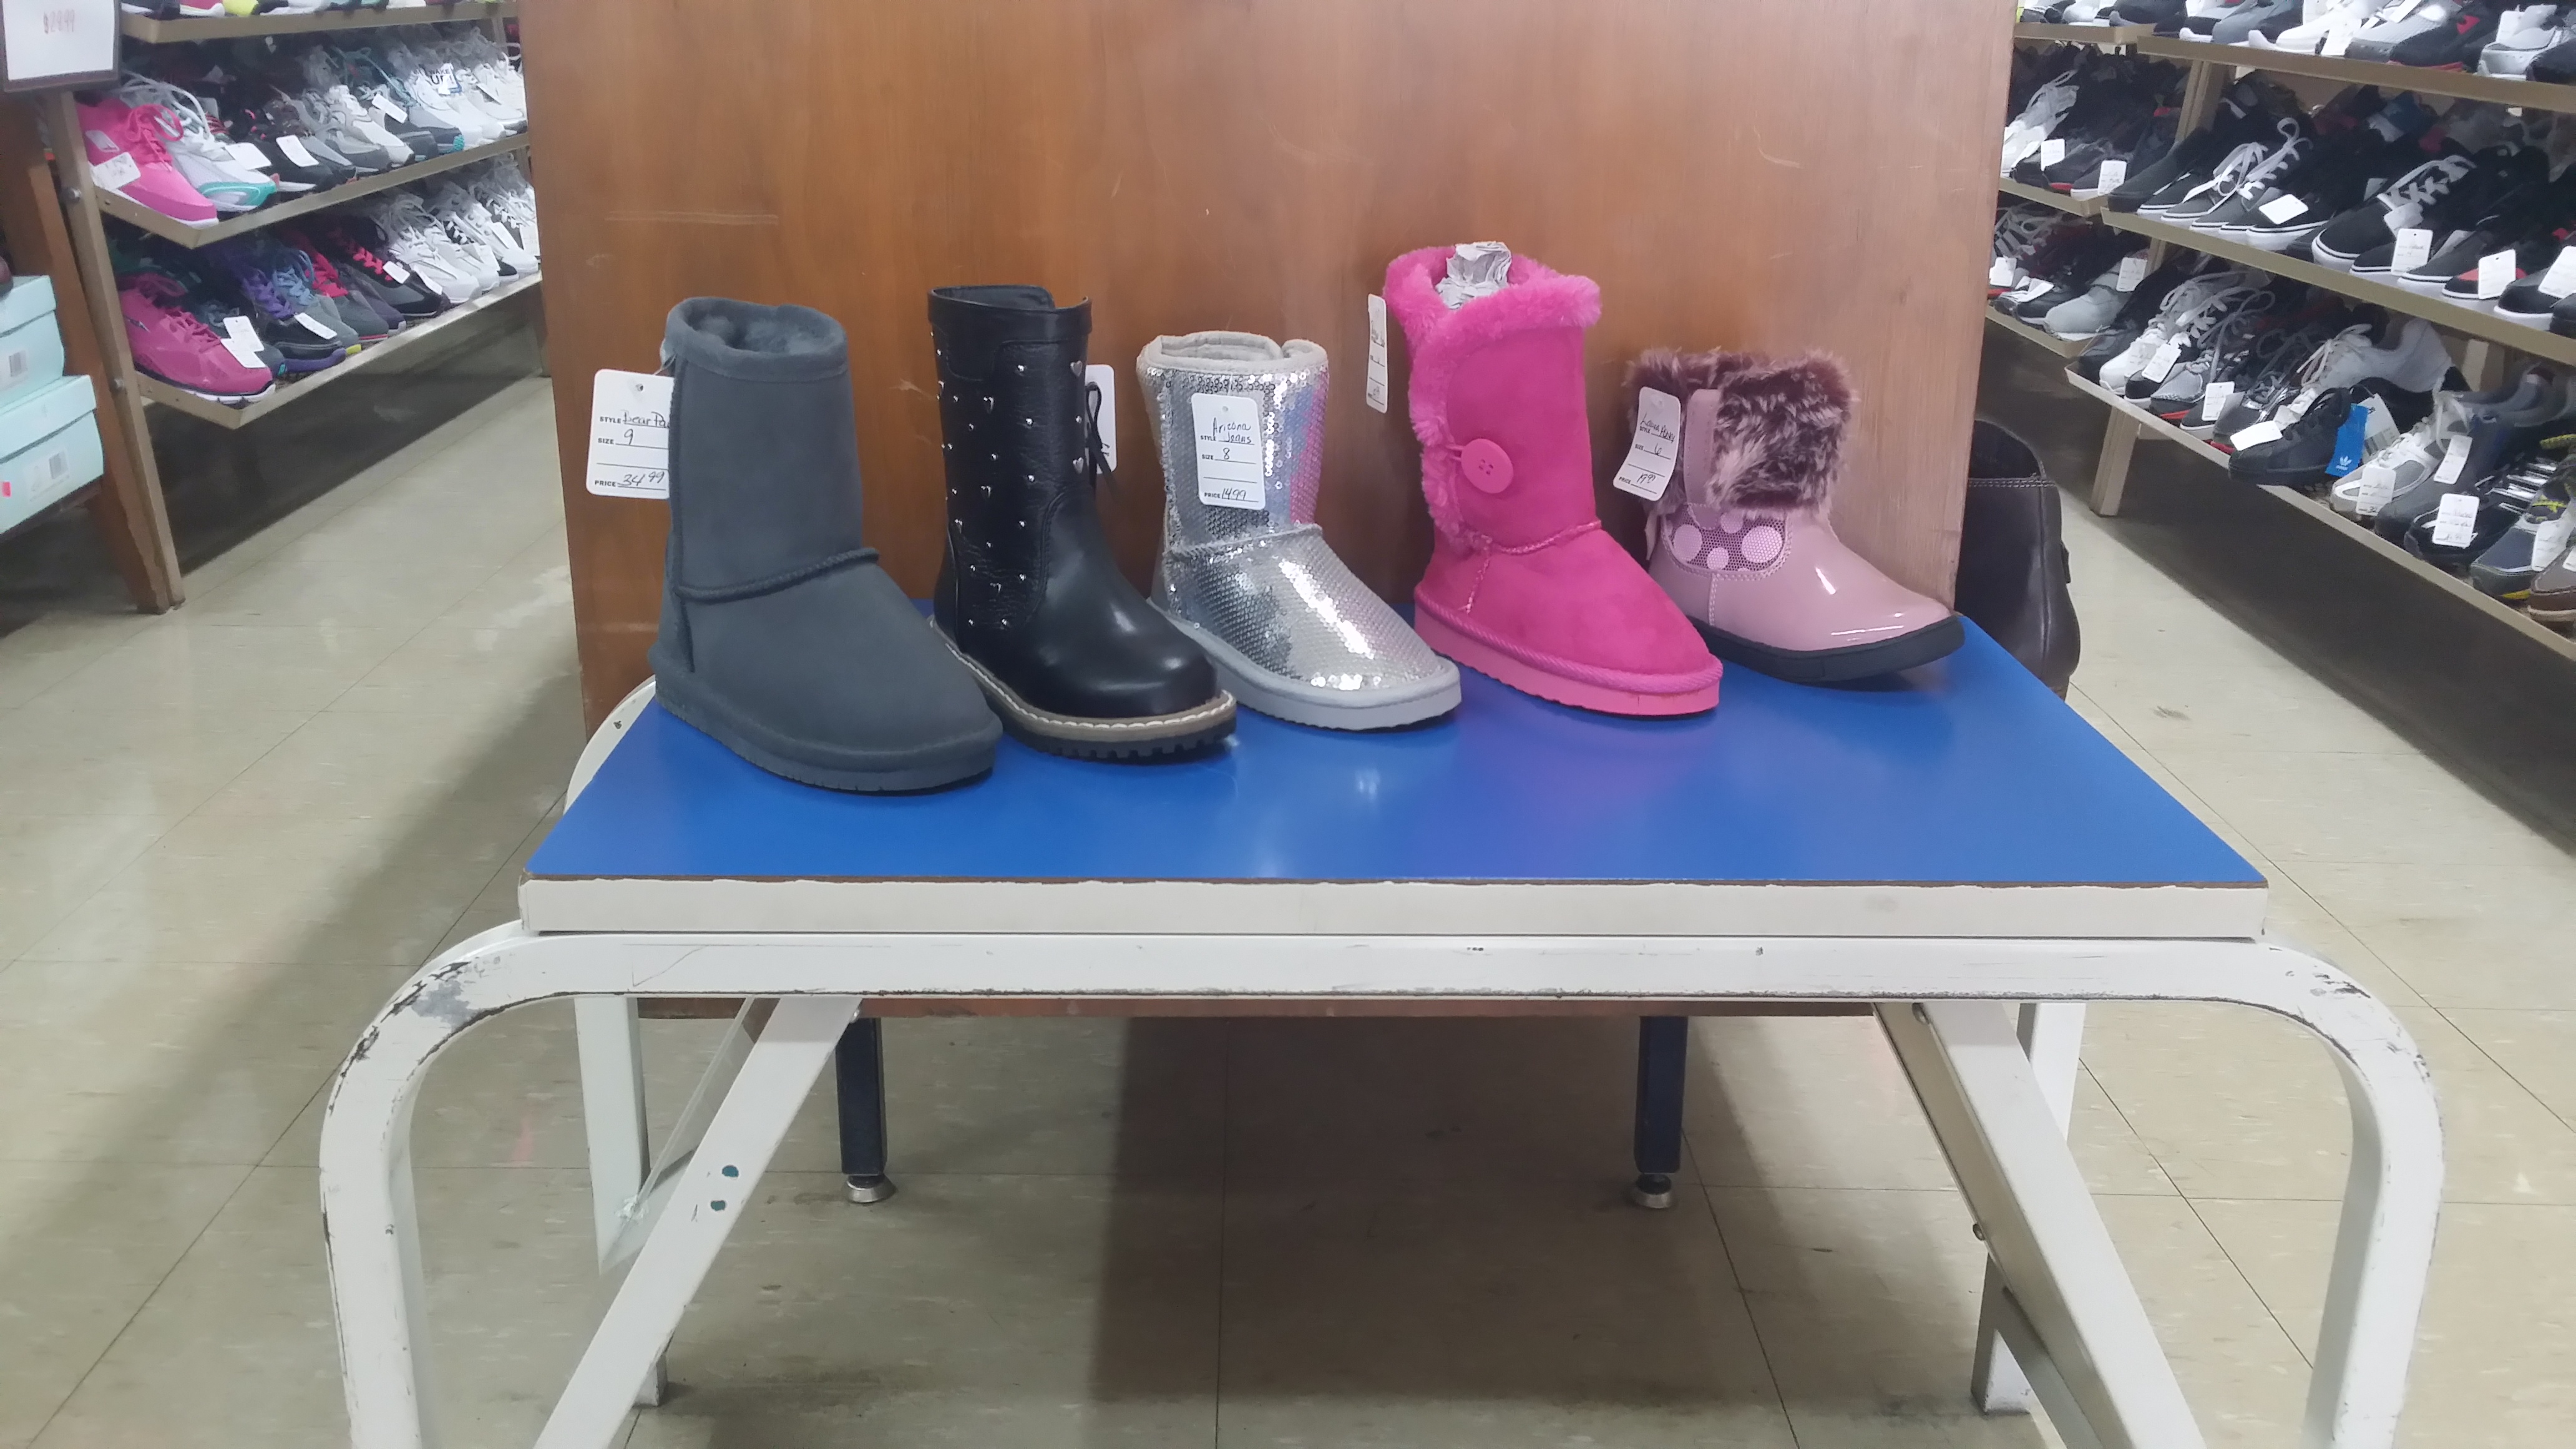 Polly S Shoes Danville Ky